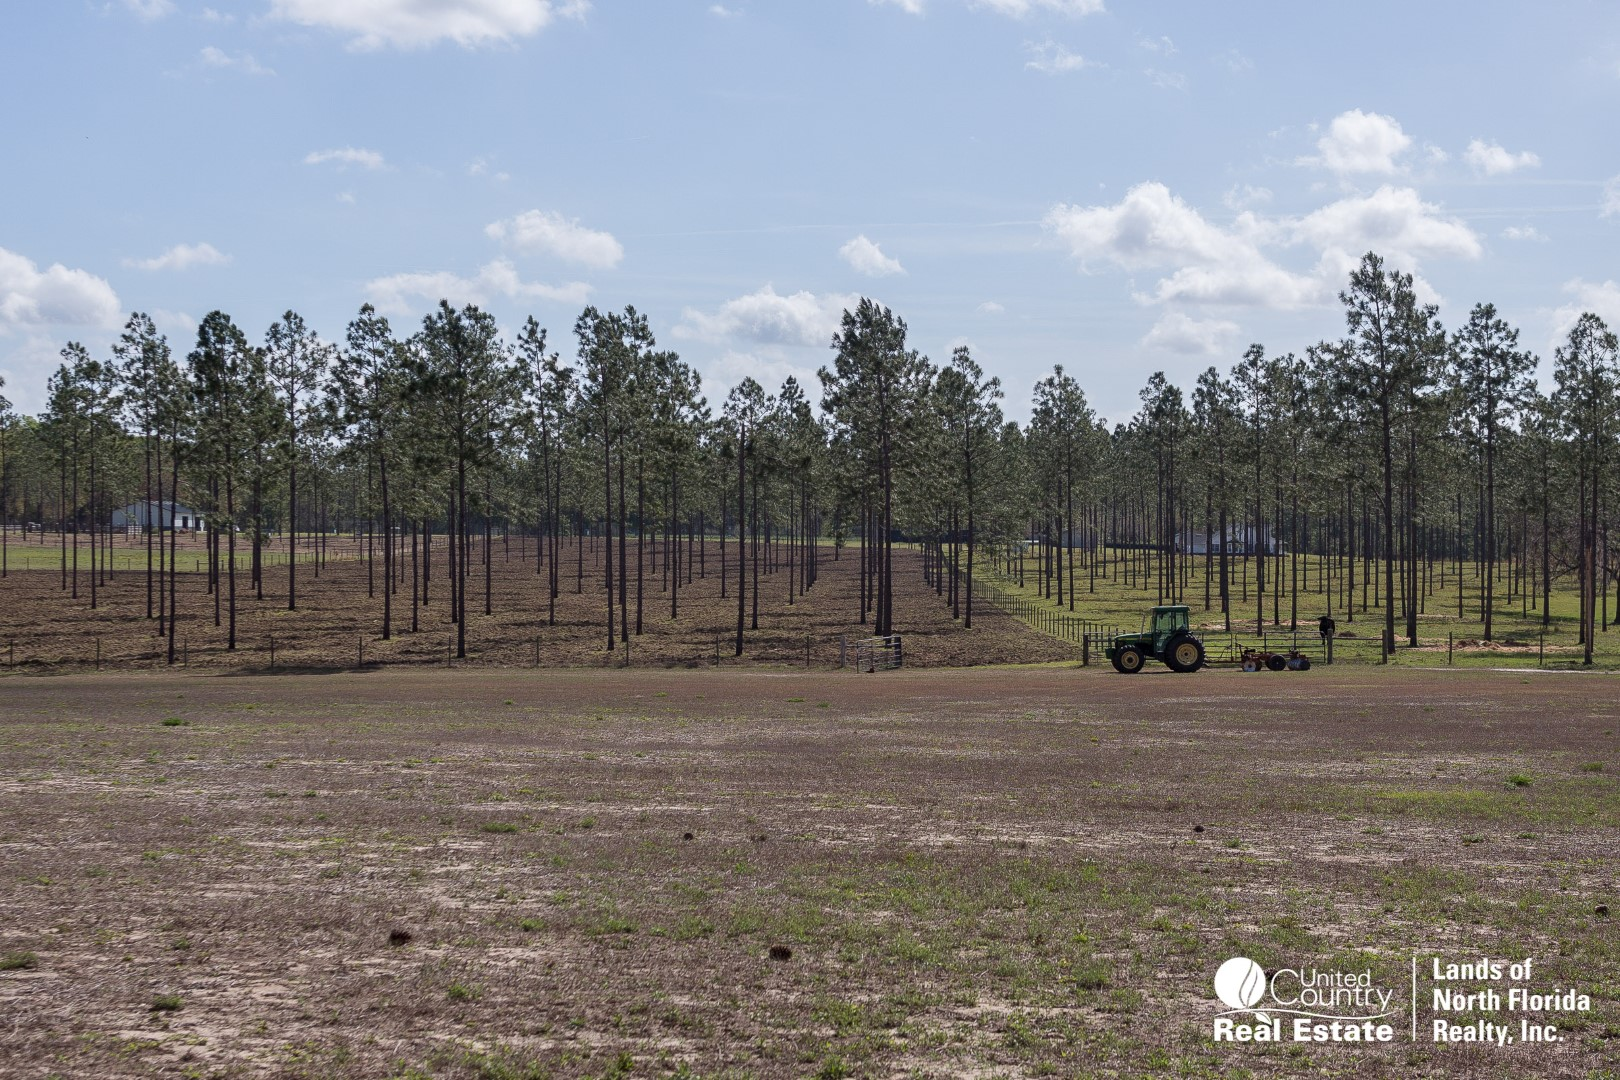 Field with tractor and pine timber plantation in background